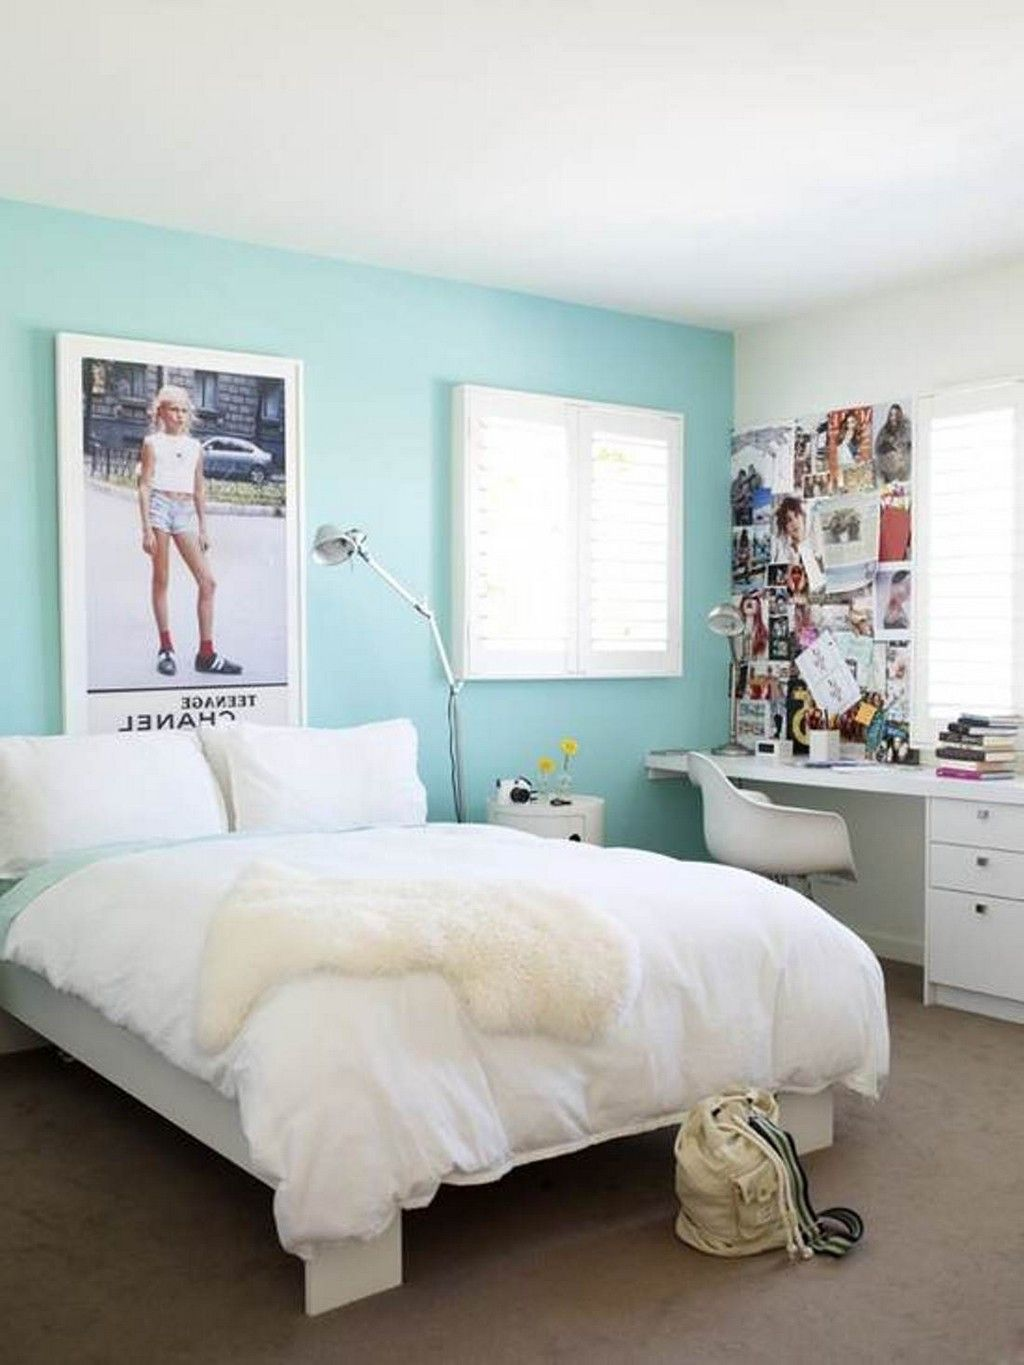 Bedroom colors ideas for teenage girls - Bedroom Calming Blue Paint Colors For Small Teen Bedroom Ideas Girls